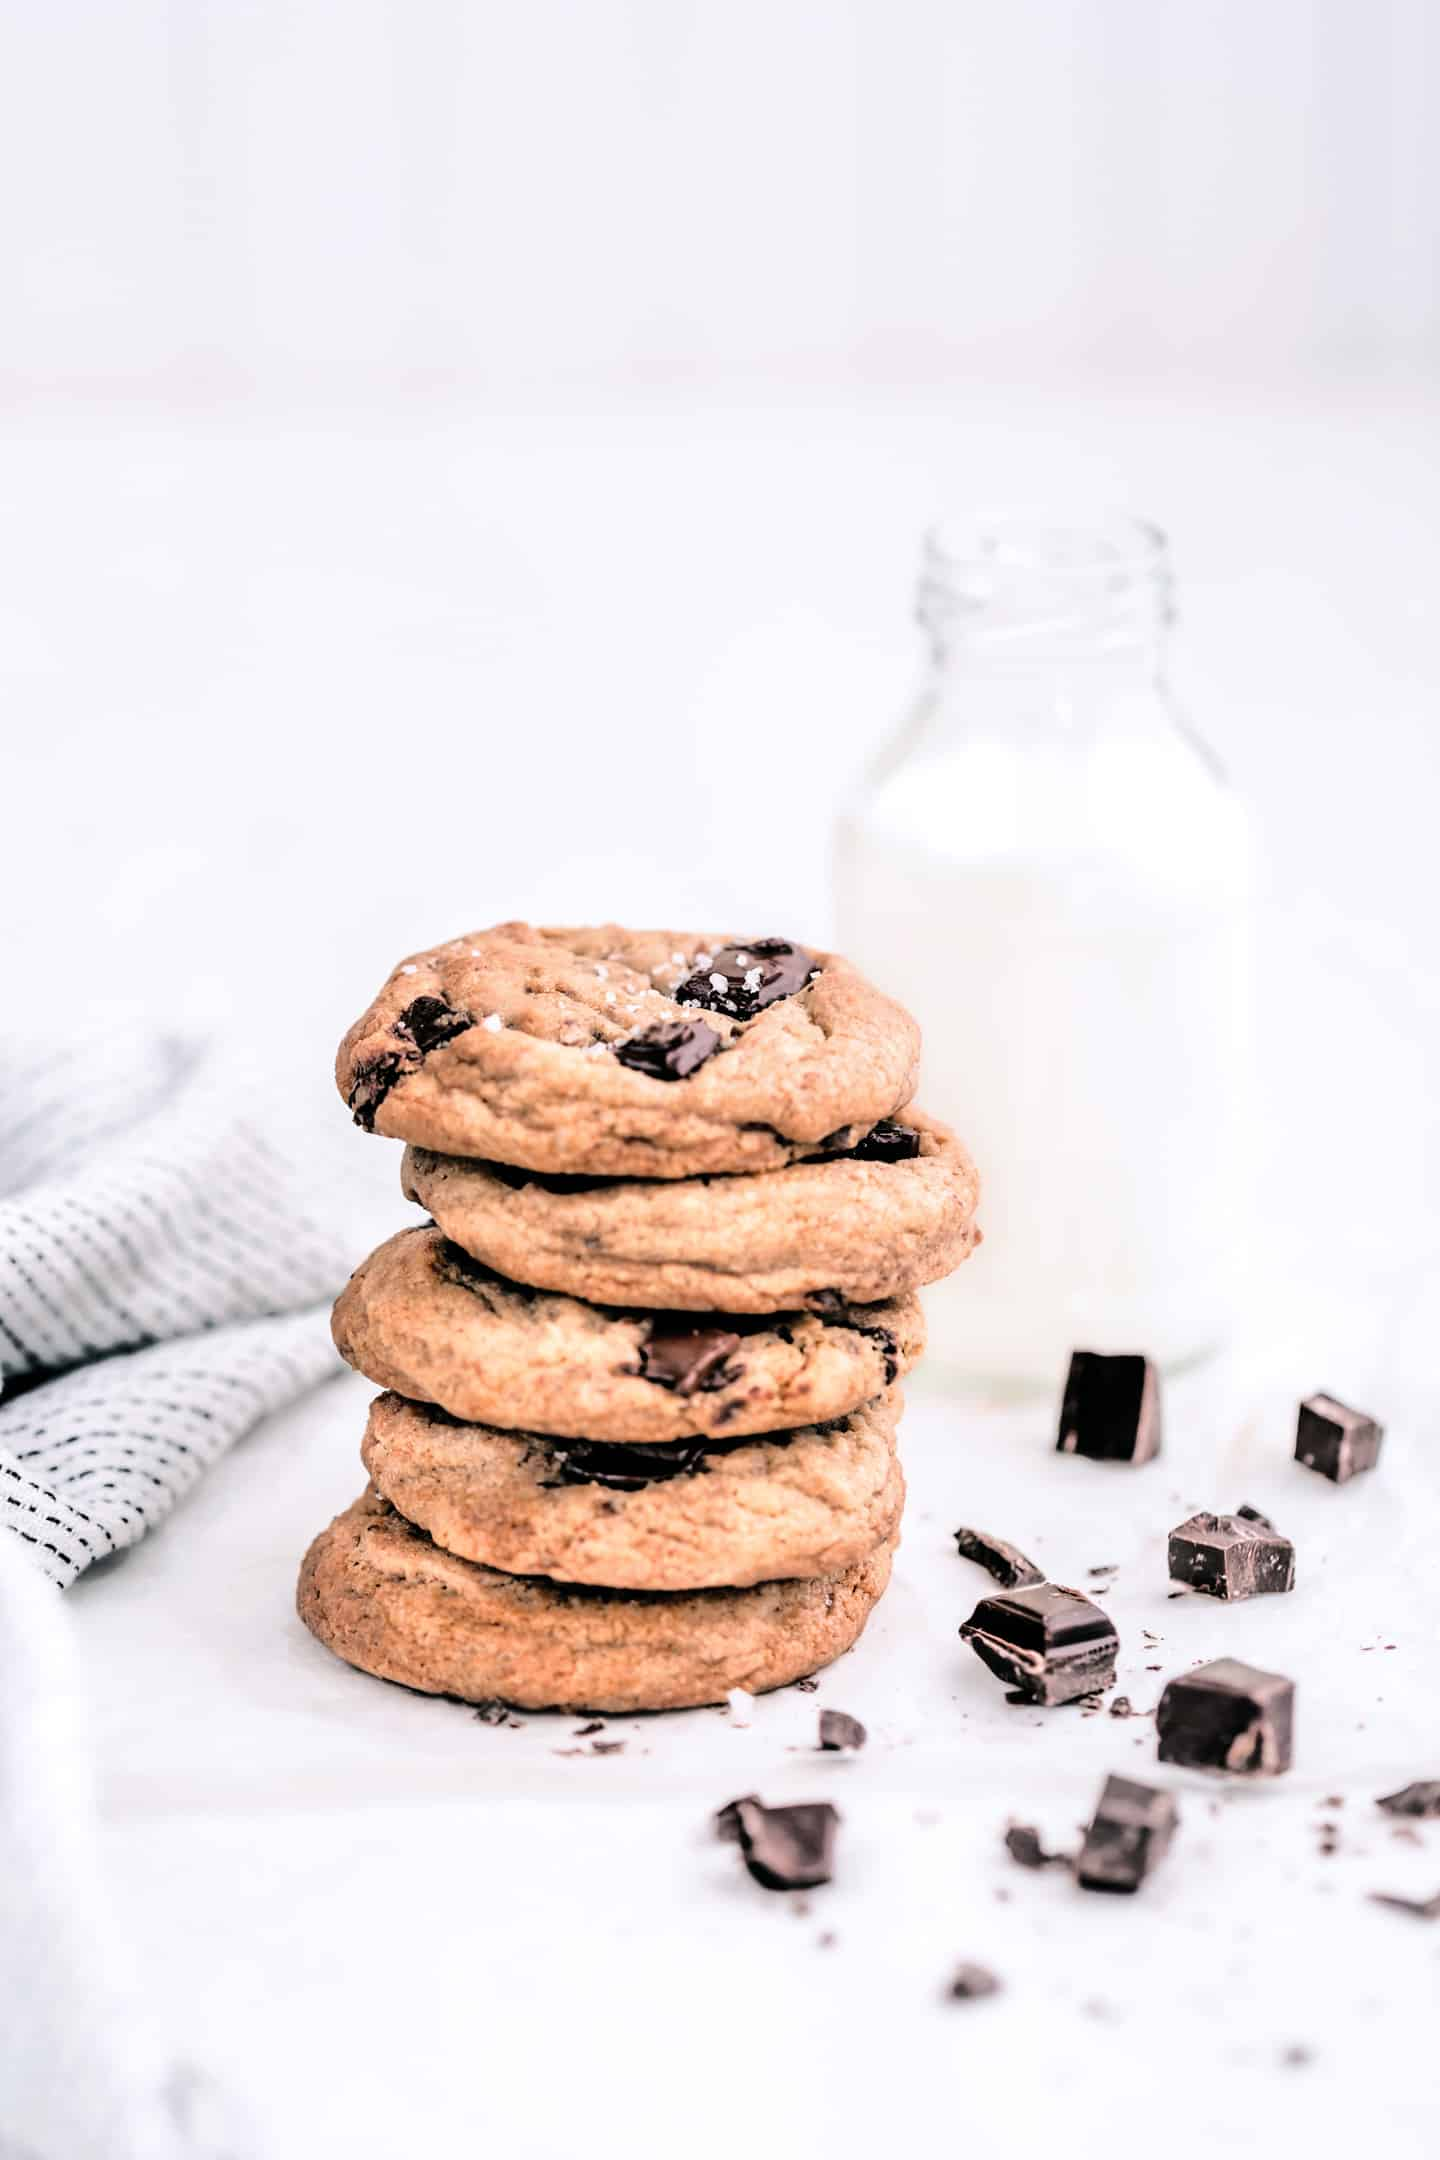 Chocolate chip cookies la recette